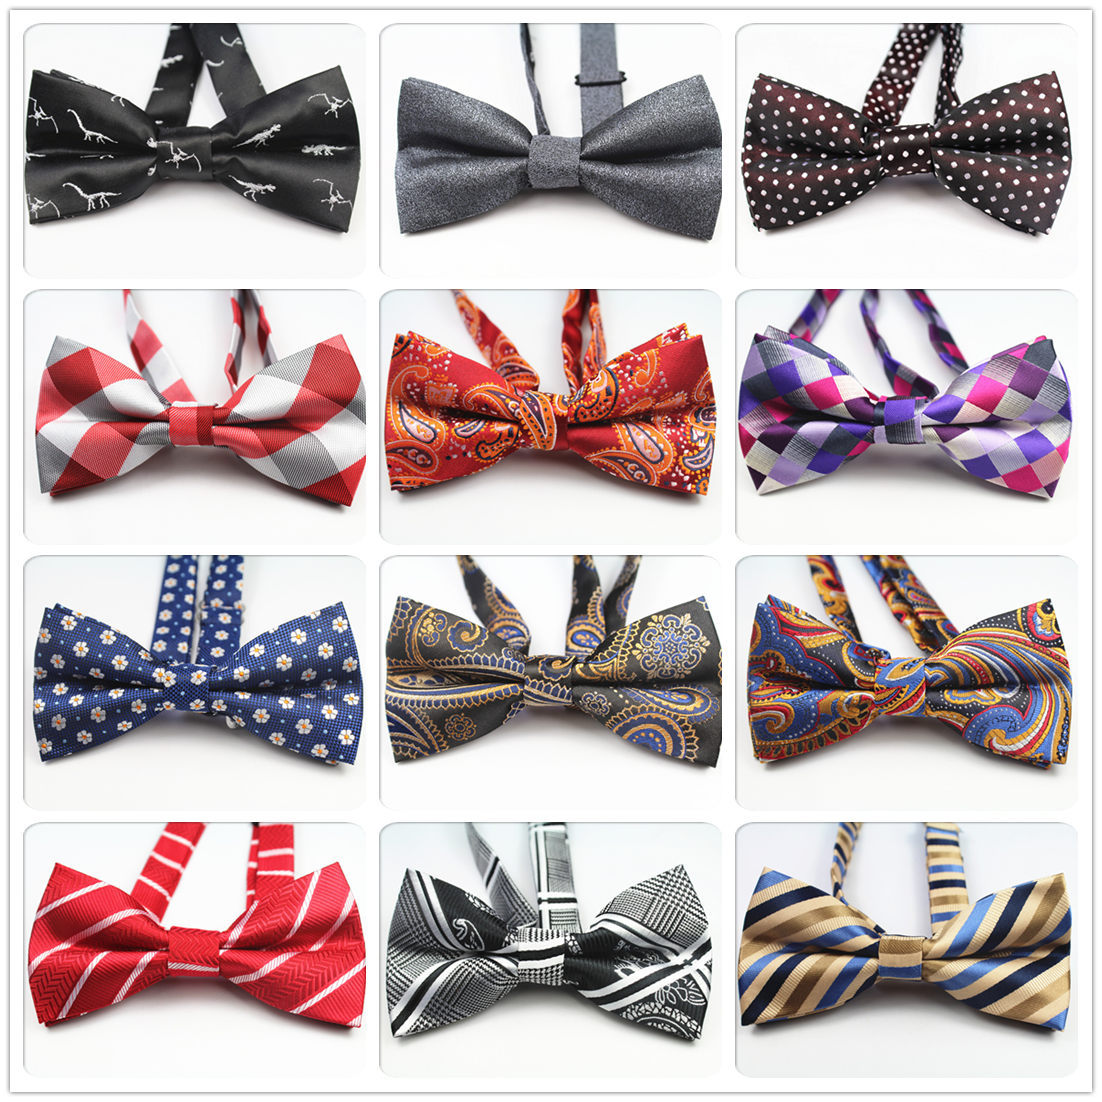 Unique Multicolor Optional Yarn Dyed Jacquard Bow Tie Hand-made New Men's High Quality Polyester Silk Decorative Bow Tie.